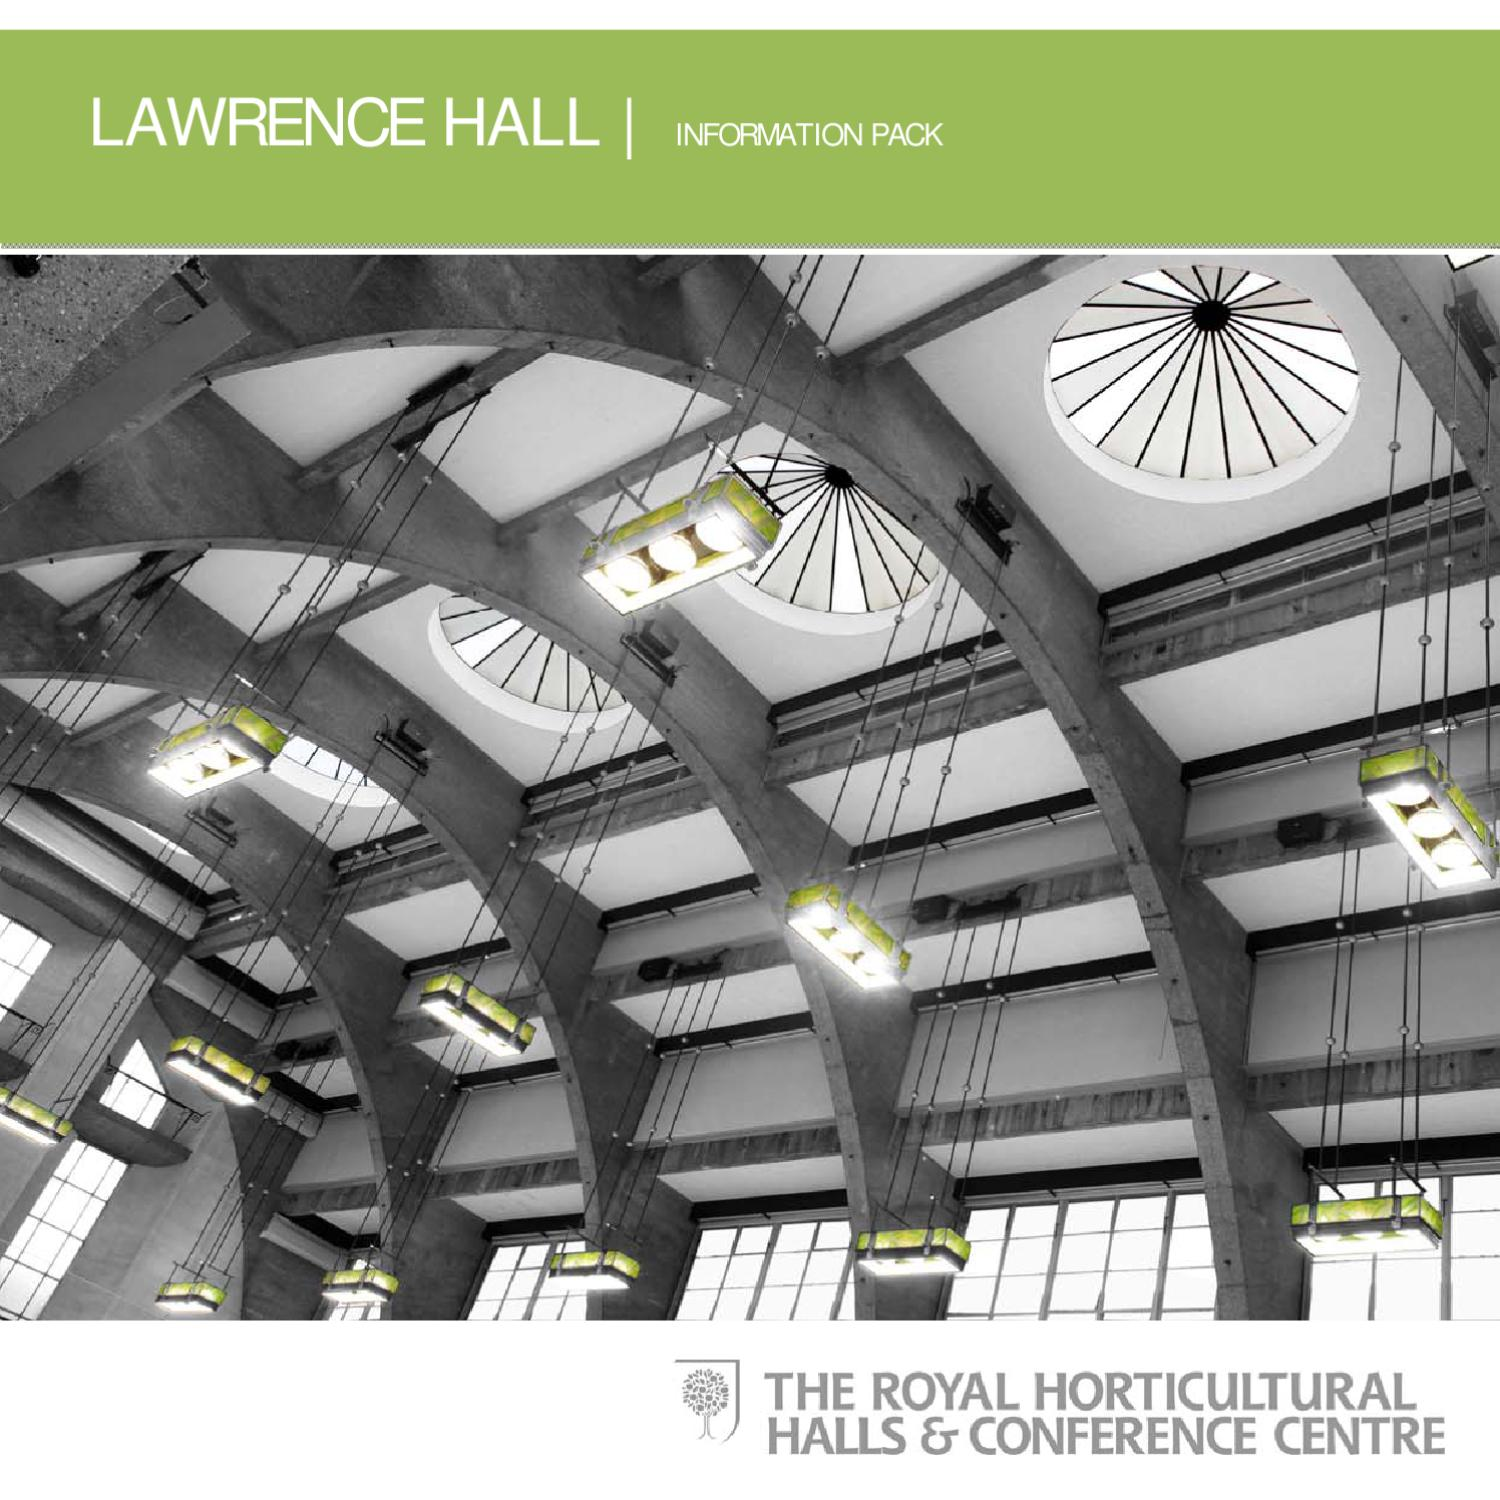 Lawrence Hall Information Pack By The Royal Horticultural